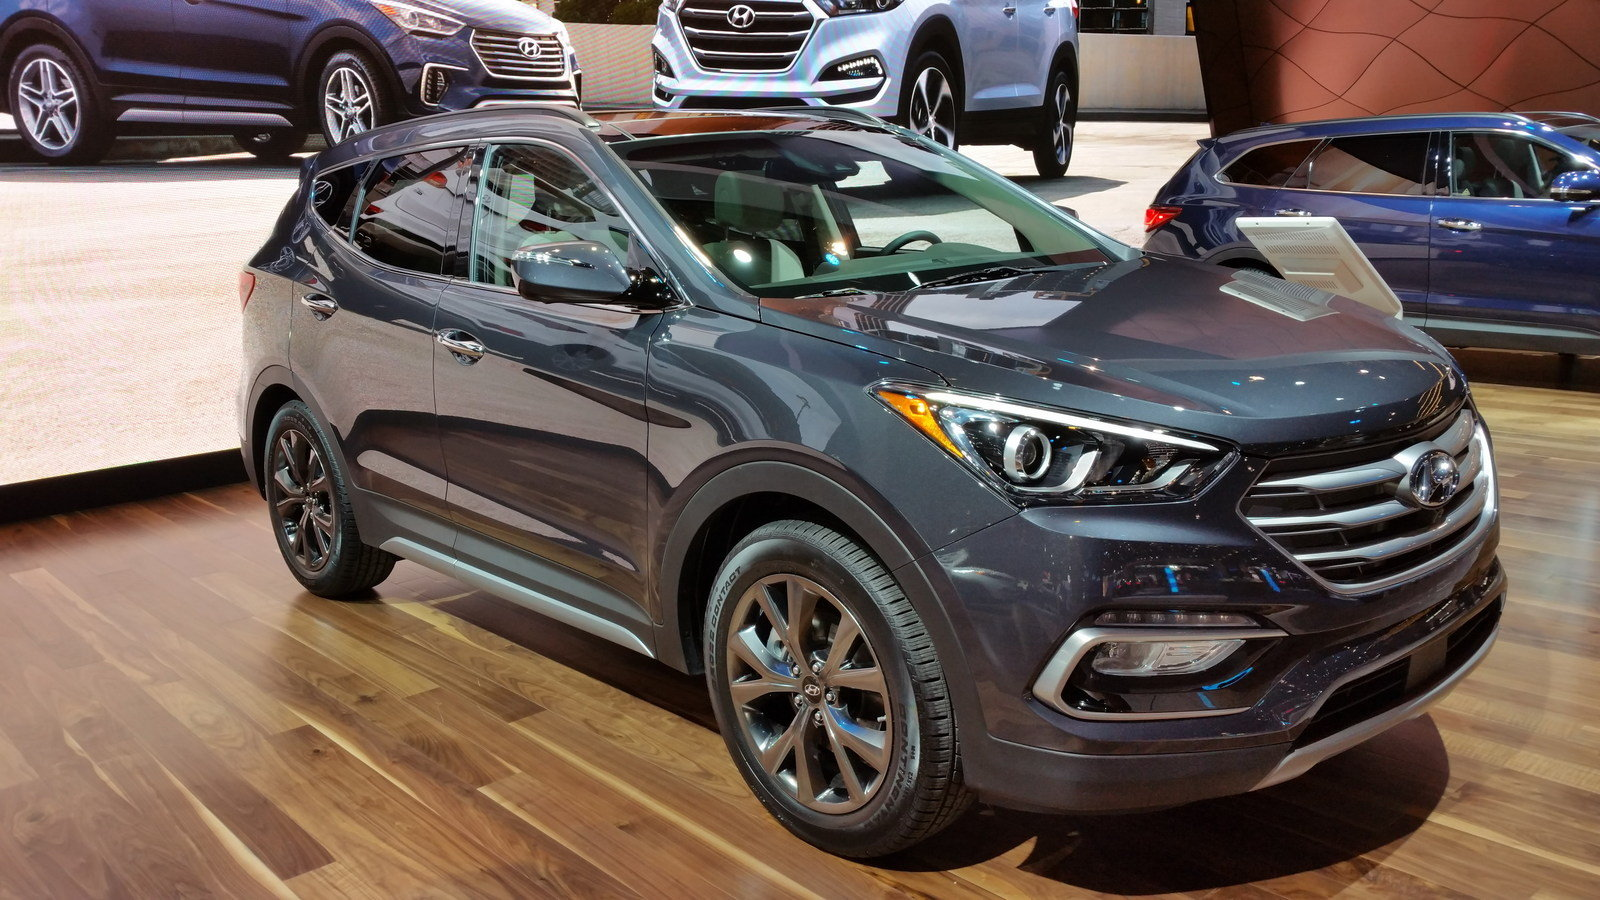 2017 hyundai santa fe picture 665913 car review top speed. Black Bedroom Furniture Sets. Home Design Ideas